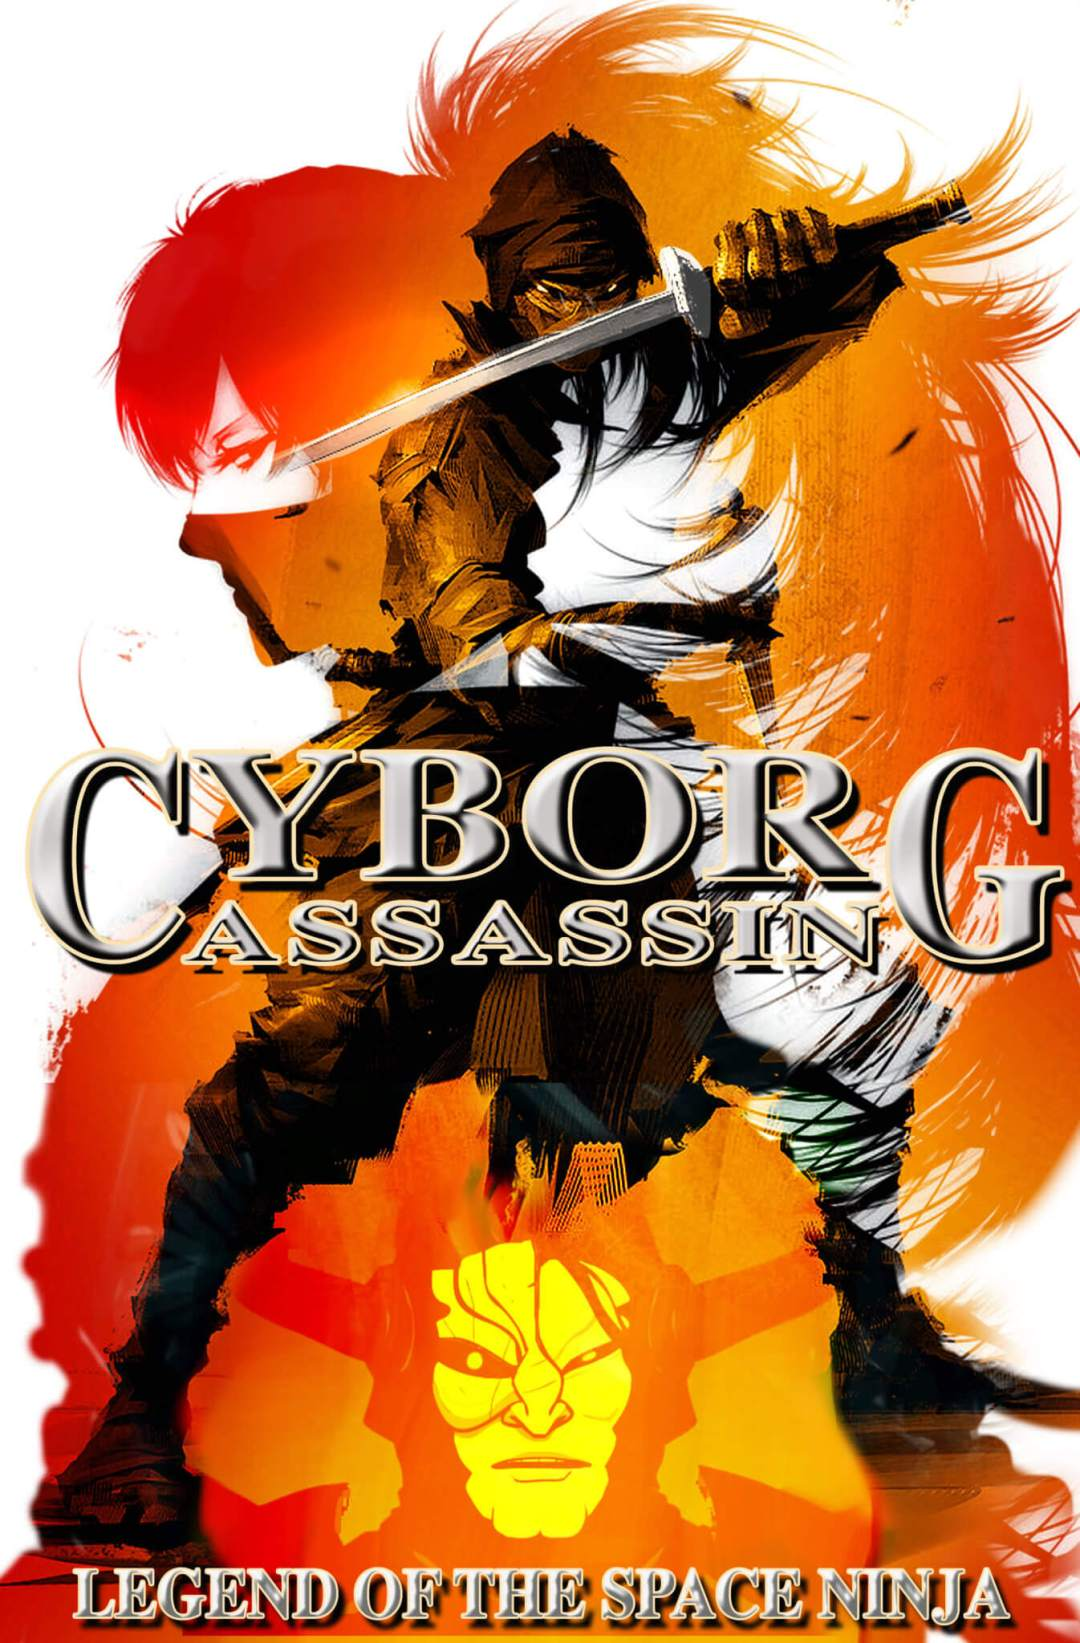 Cyborg Assassin NOT FINAL CYBORG ASSASSIN: LEGEND OF THE SPACE NINJA